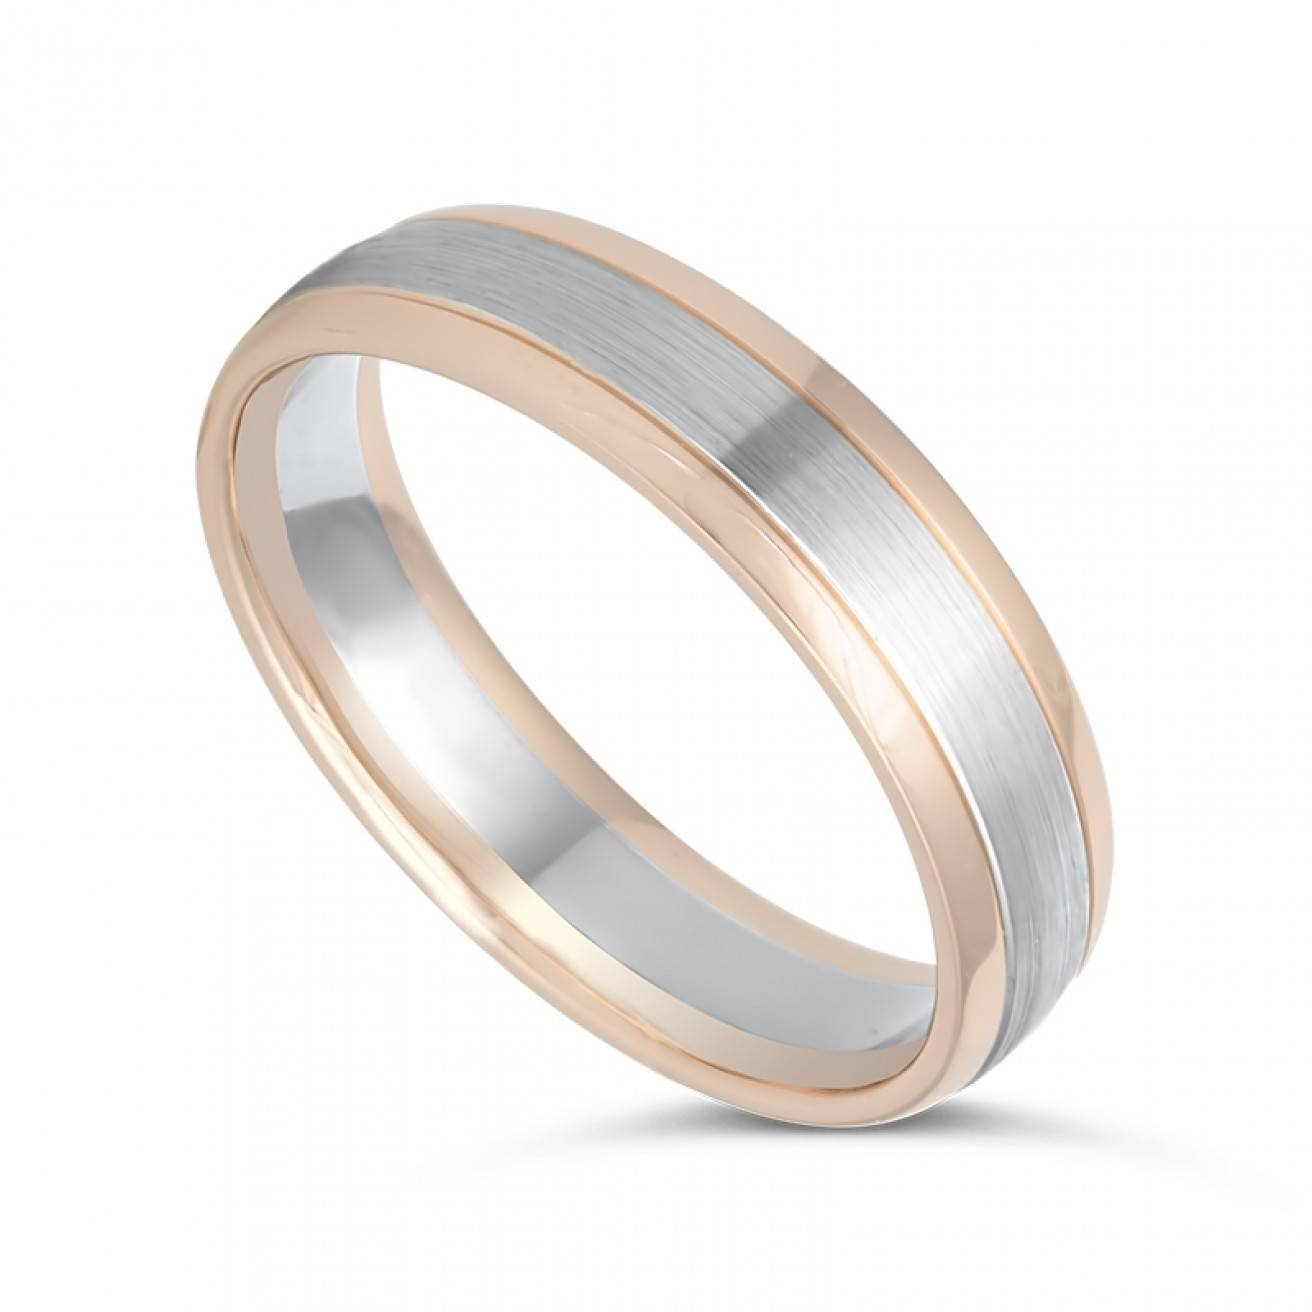 Palladium Wedding Rings With 2017 Palladium Wedding Bands For Women (View 5 of 15)